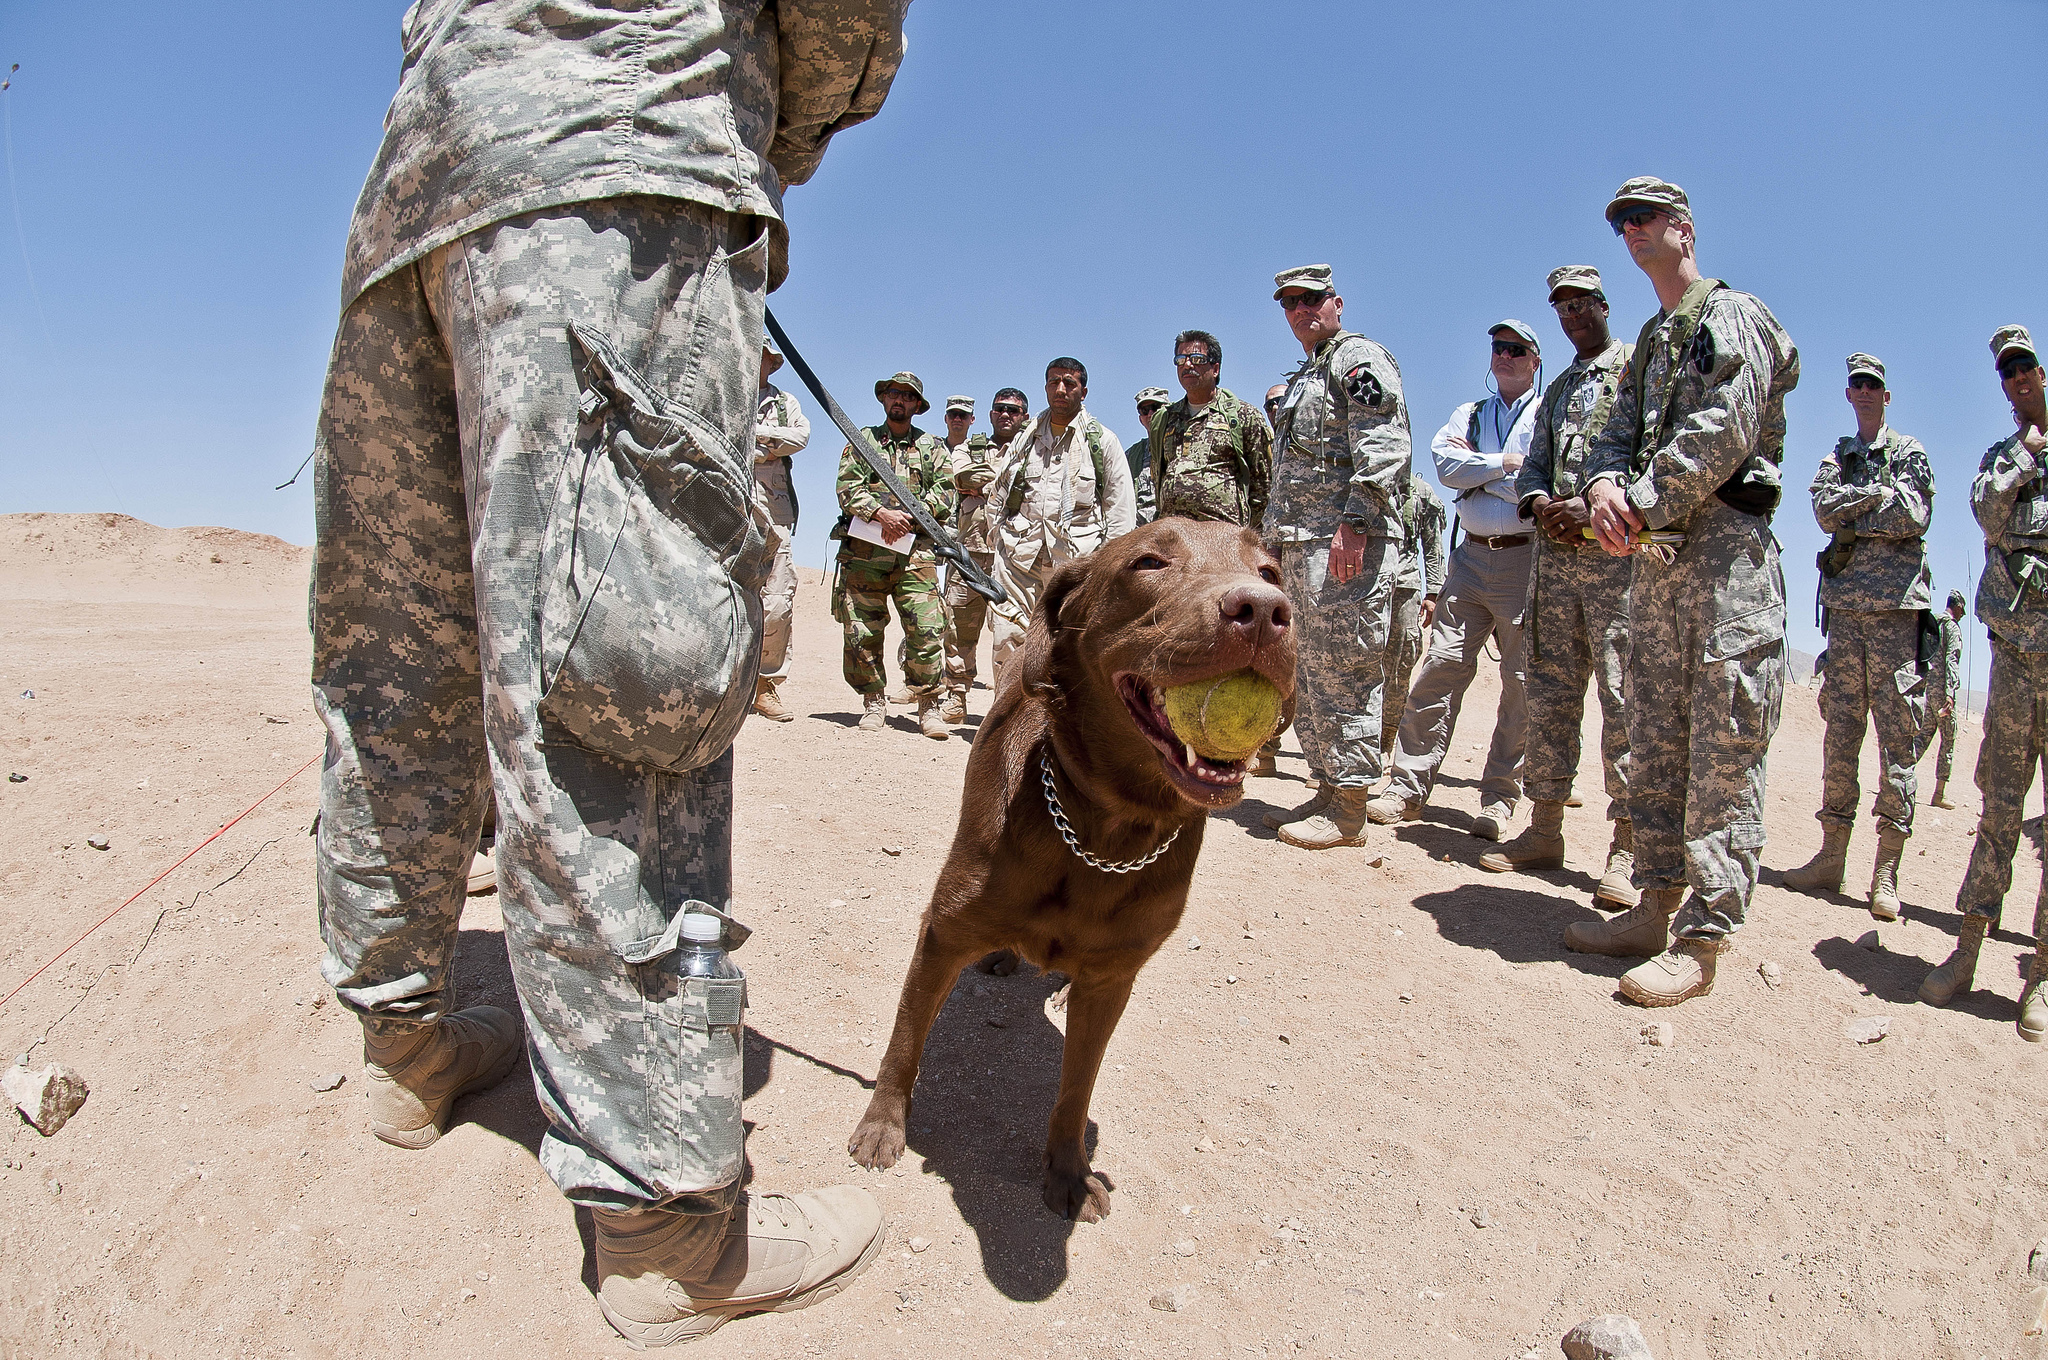 Army mishandled bomb-sniffing dogs from Afghanistan, report says